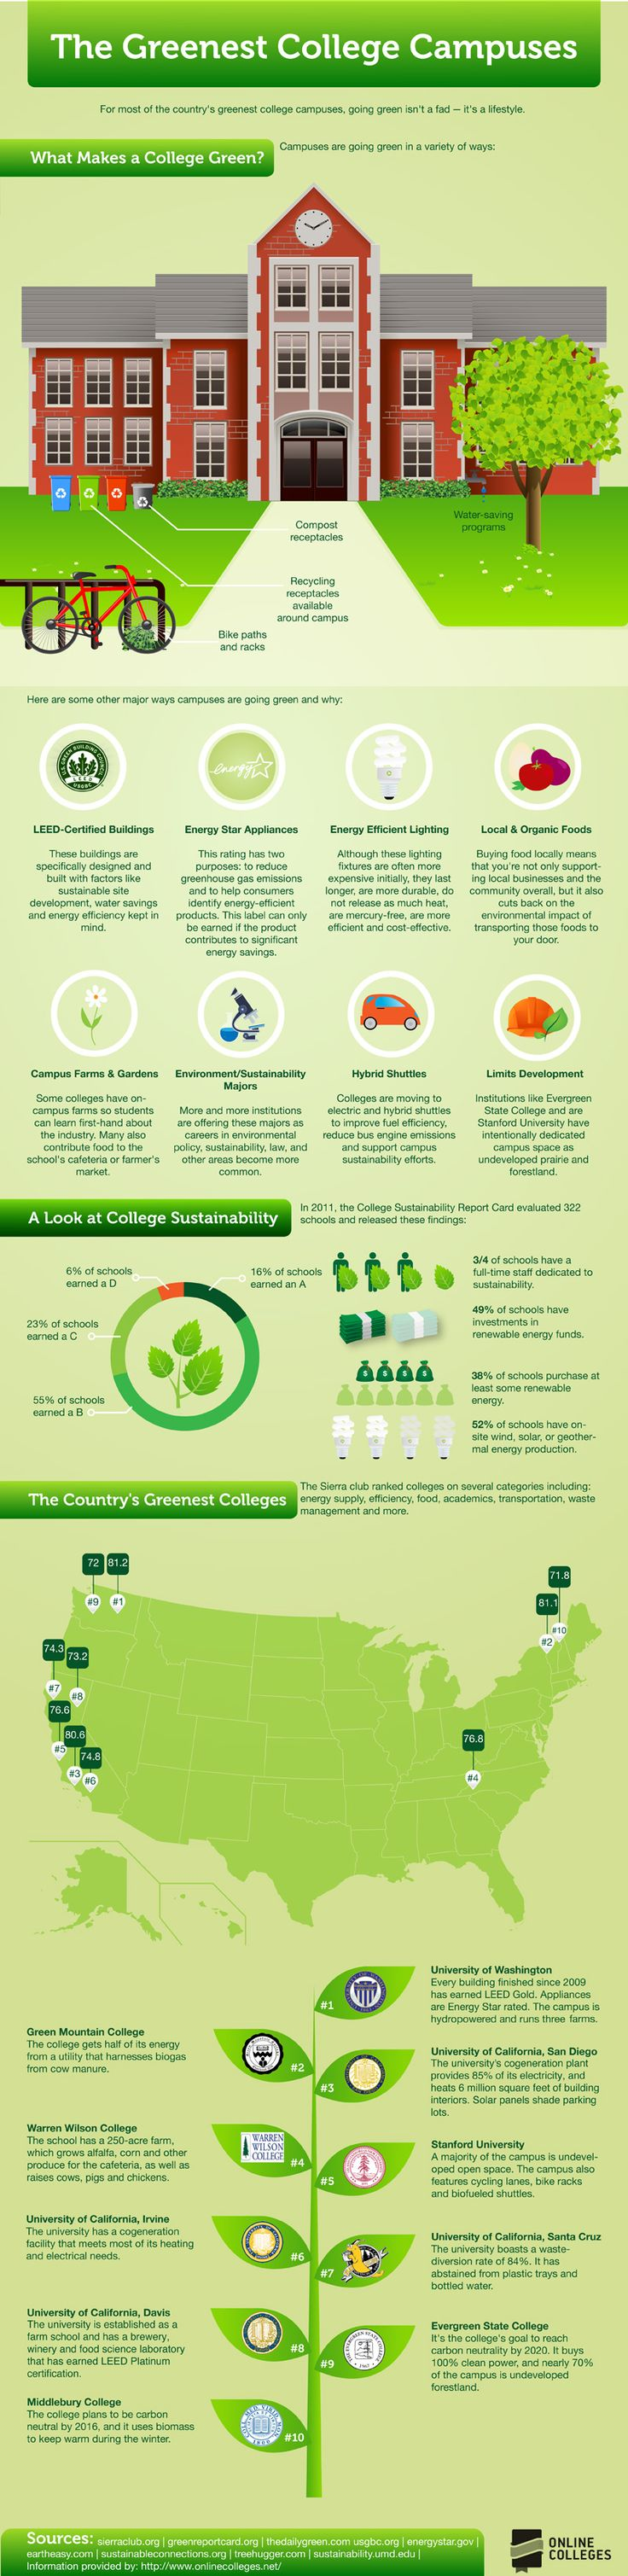 What are the differences between these types of colleges?